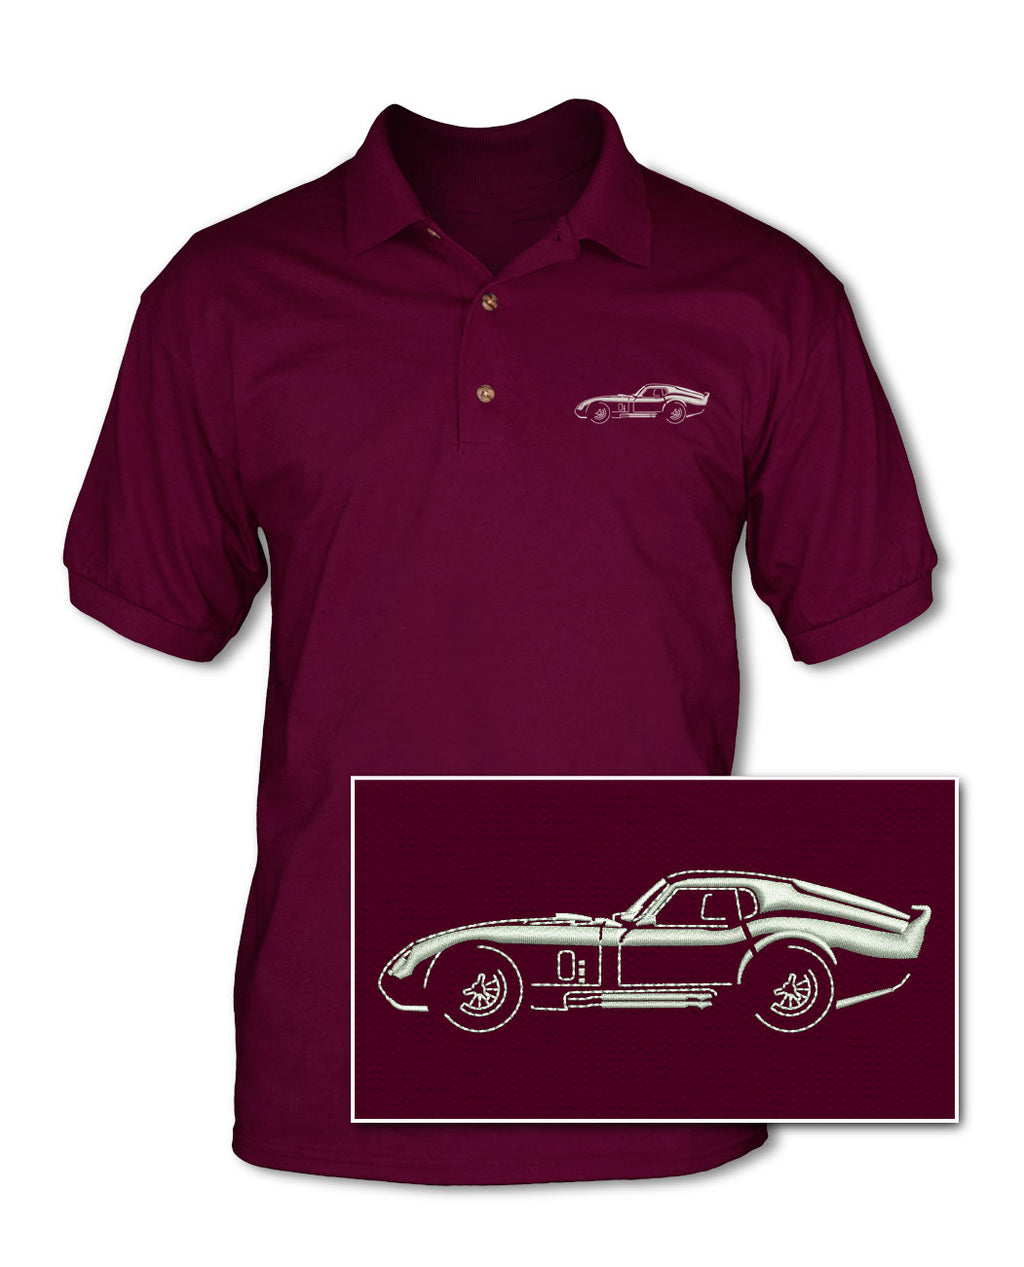 1964 Daytona Coupe Side View - Adult Pique Polo Shirt